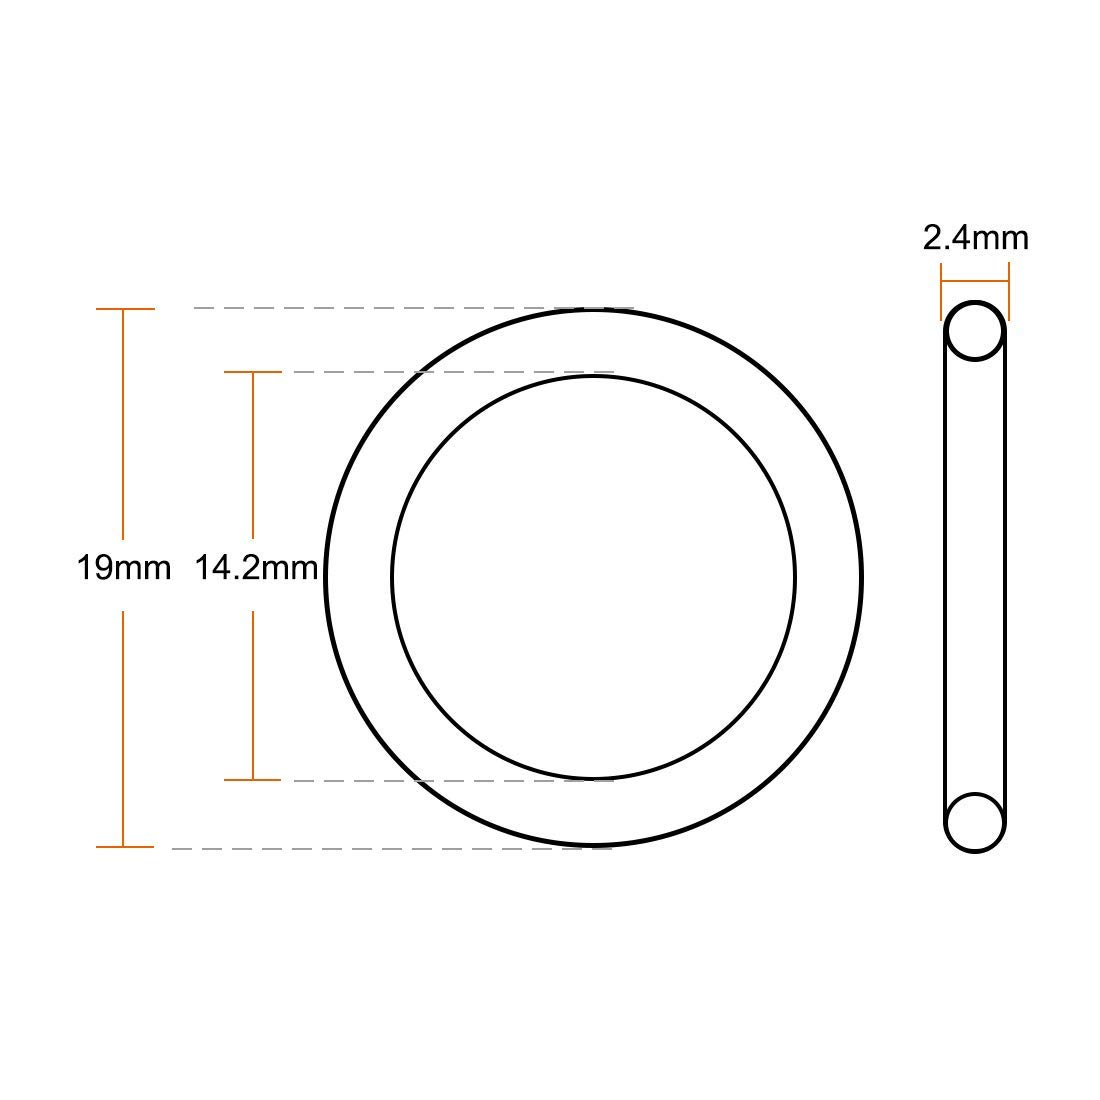 O-Ring Fluorine Rubber 19 mm OD 14.2 mm ID 2.4 mm Width FKM Seal Brown Seal 20 Pieces